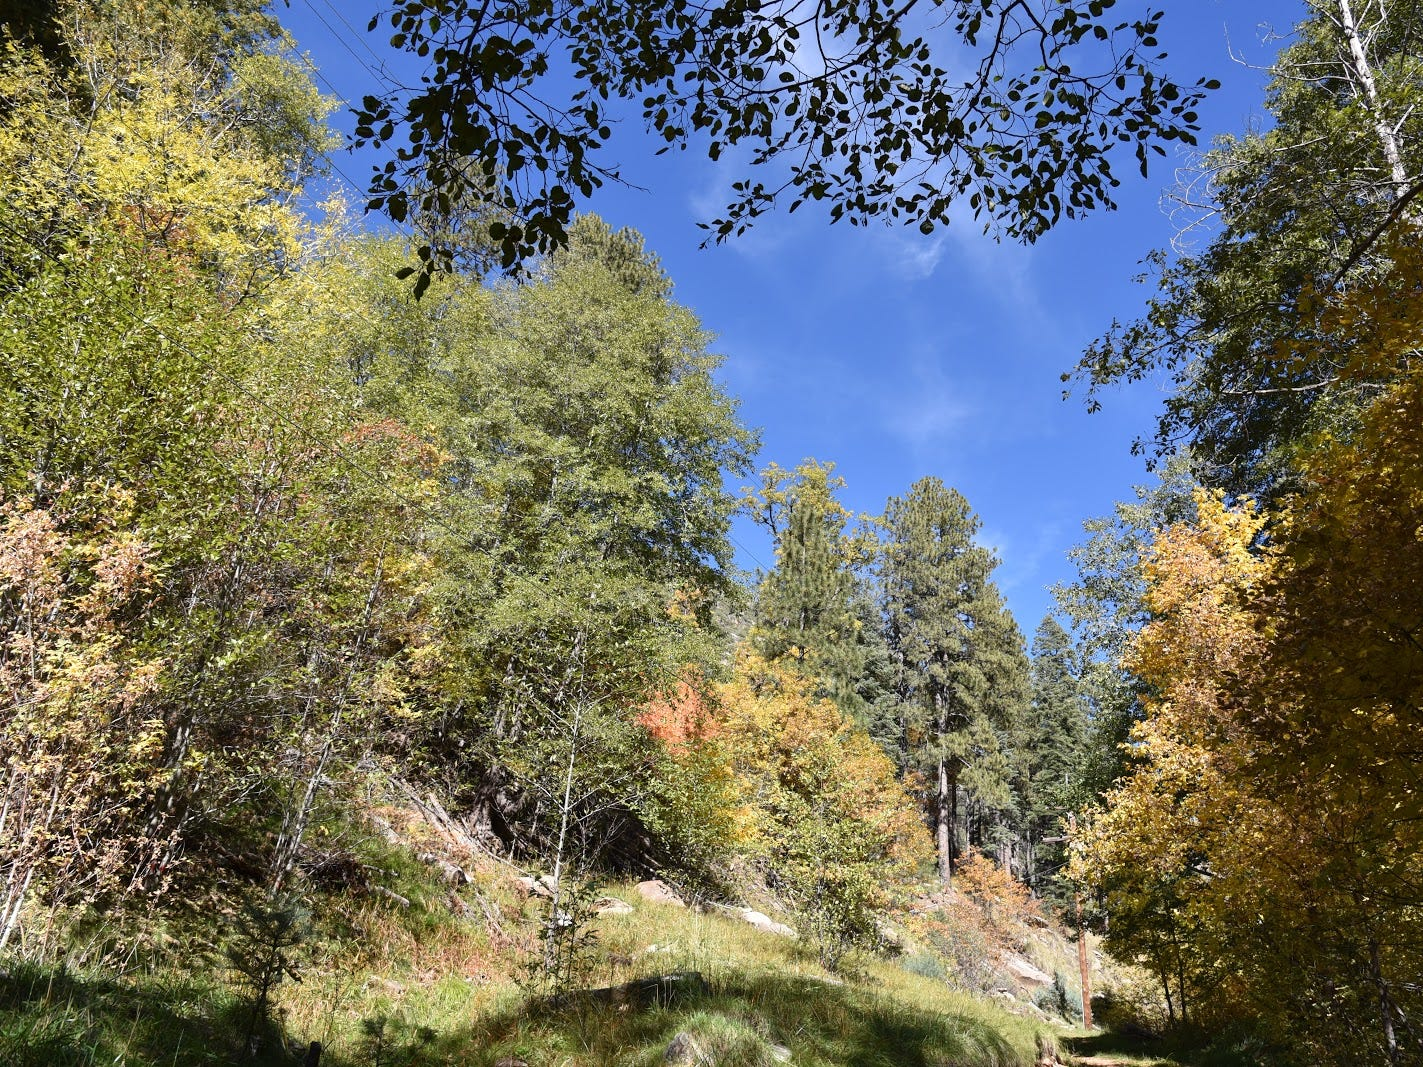 A typical scene on the lower part of the Col. Devin Trail near Payson.